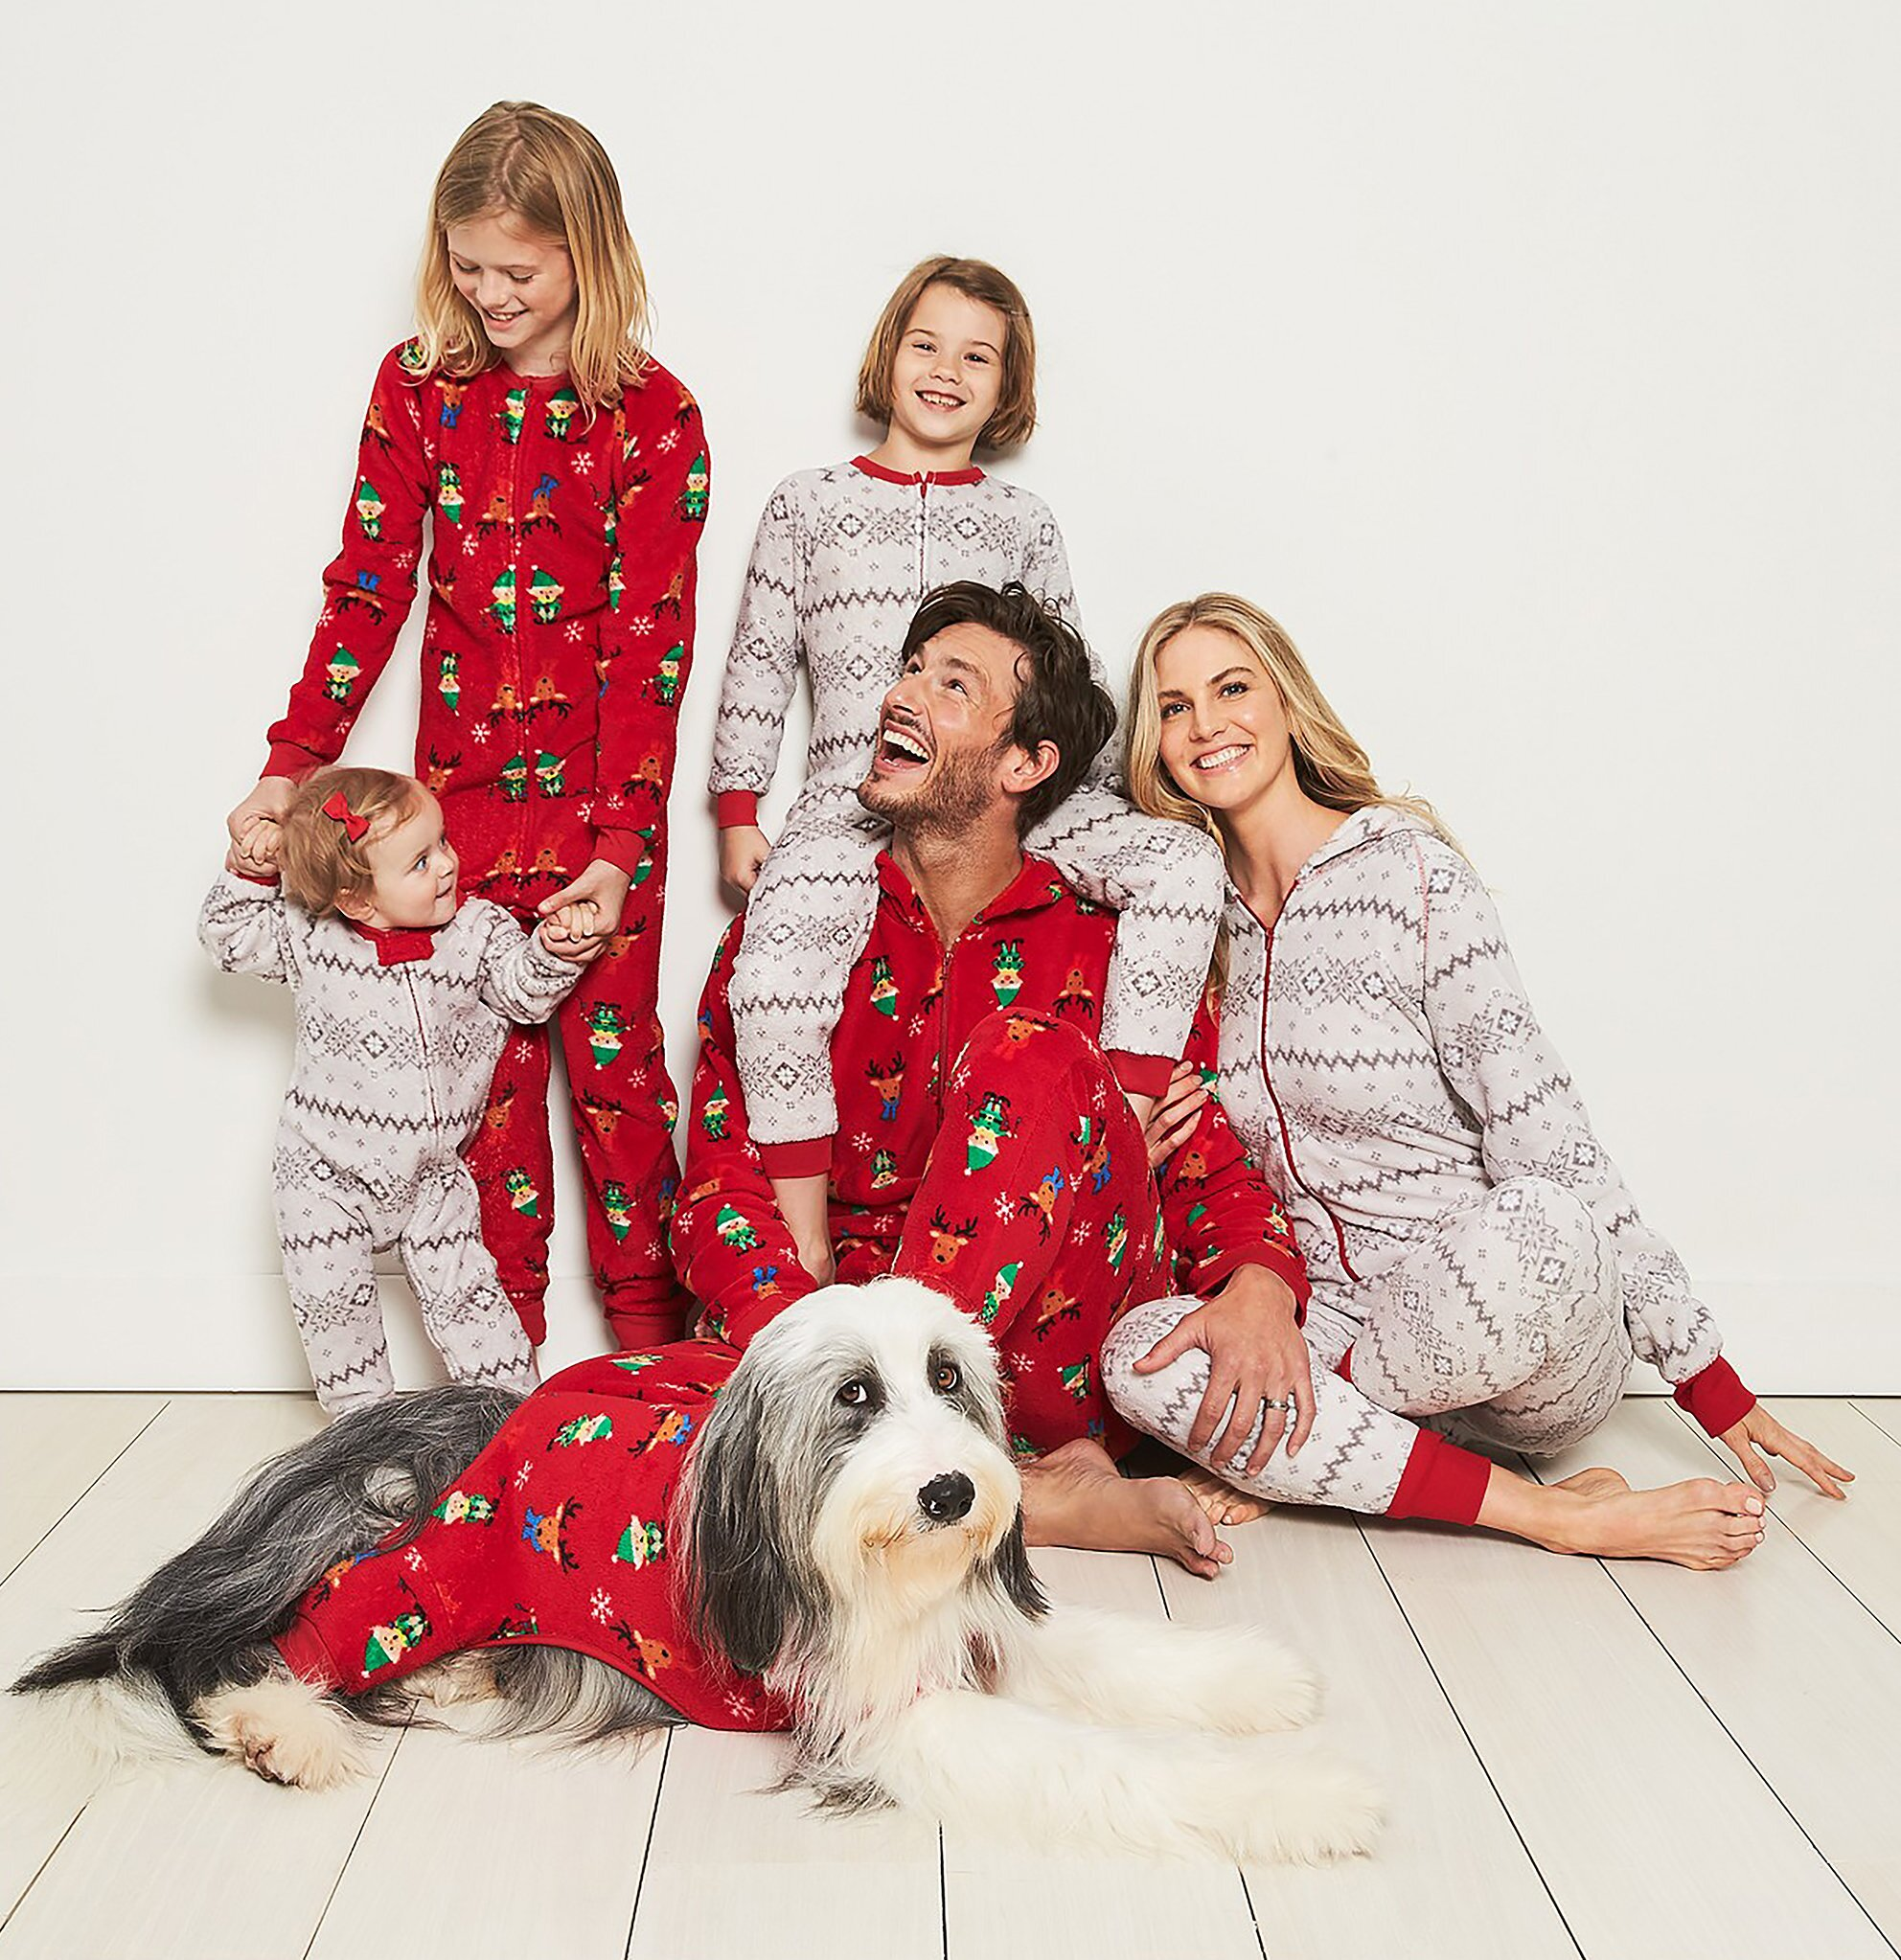 e9357381d0 The Best Matching Family Christmas Pajamas for 2018